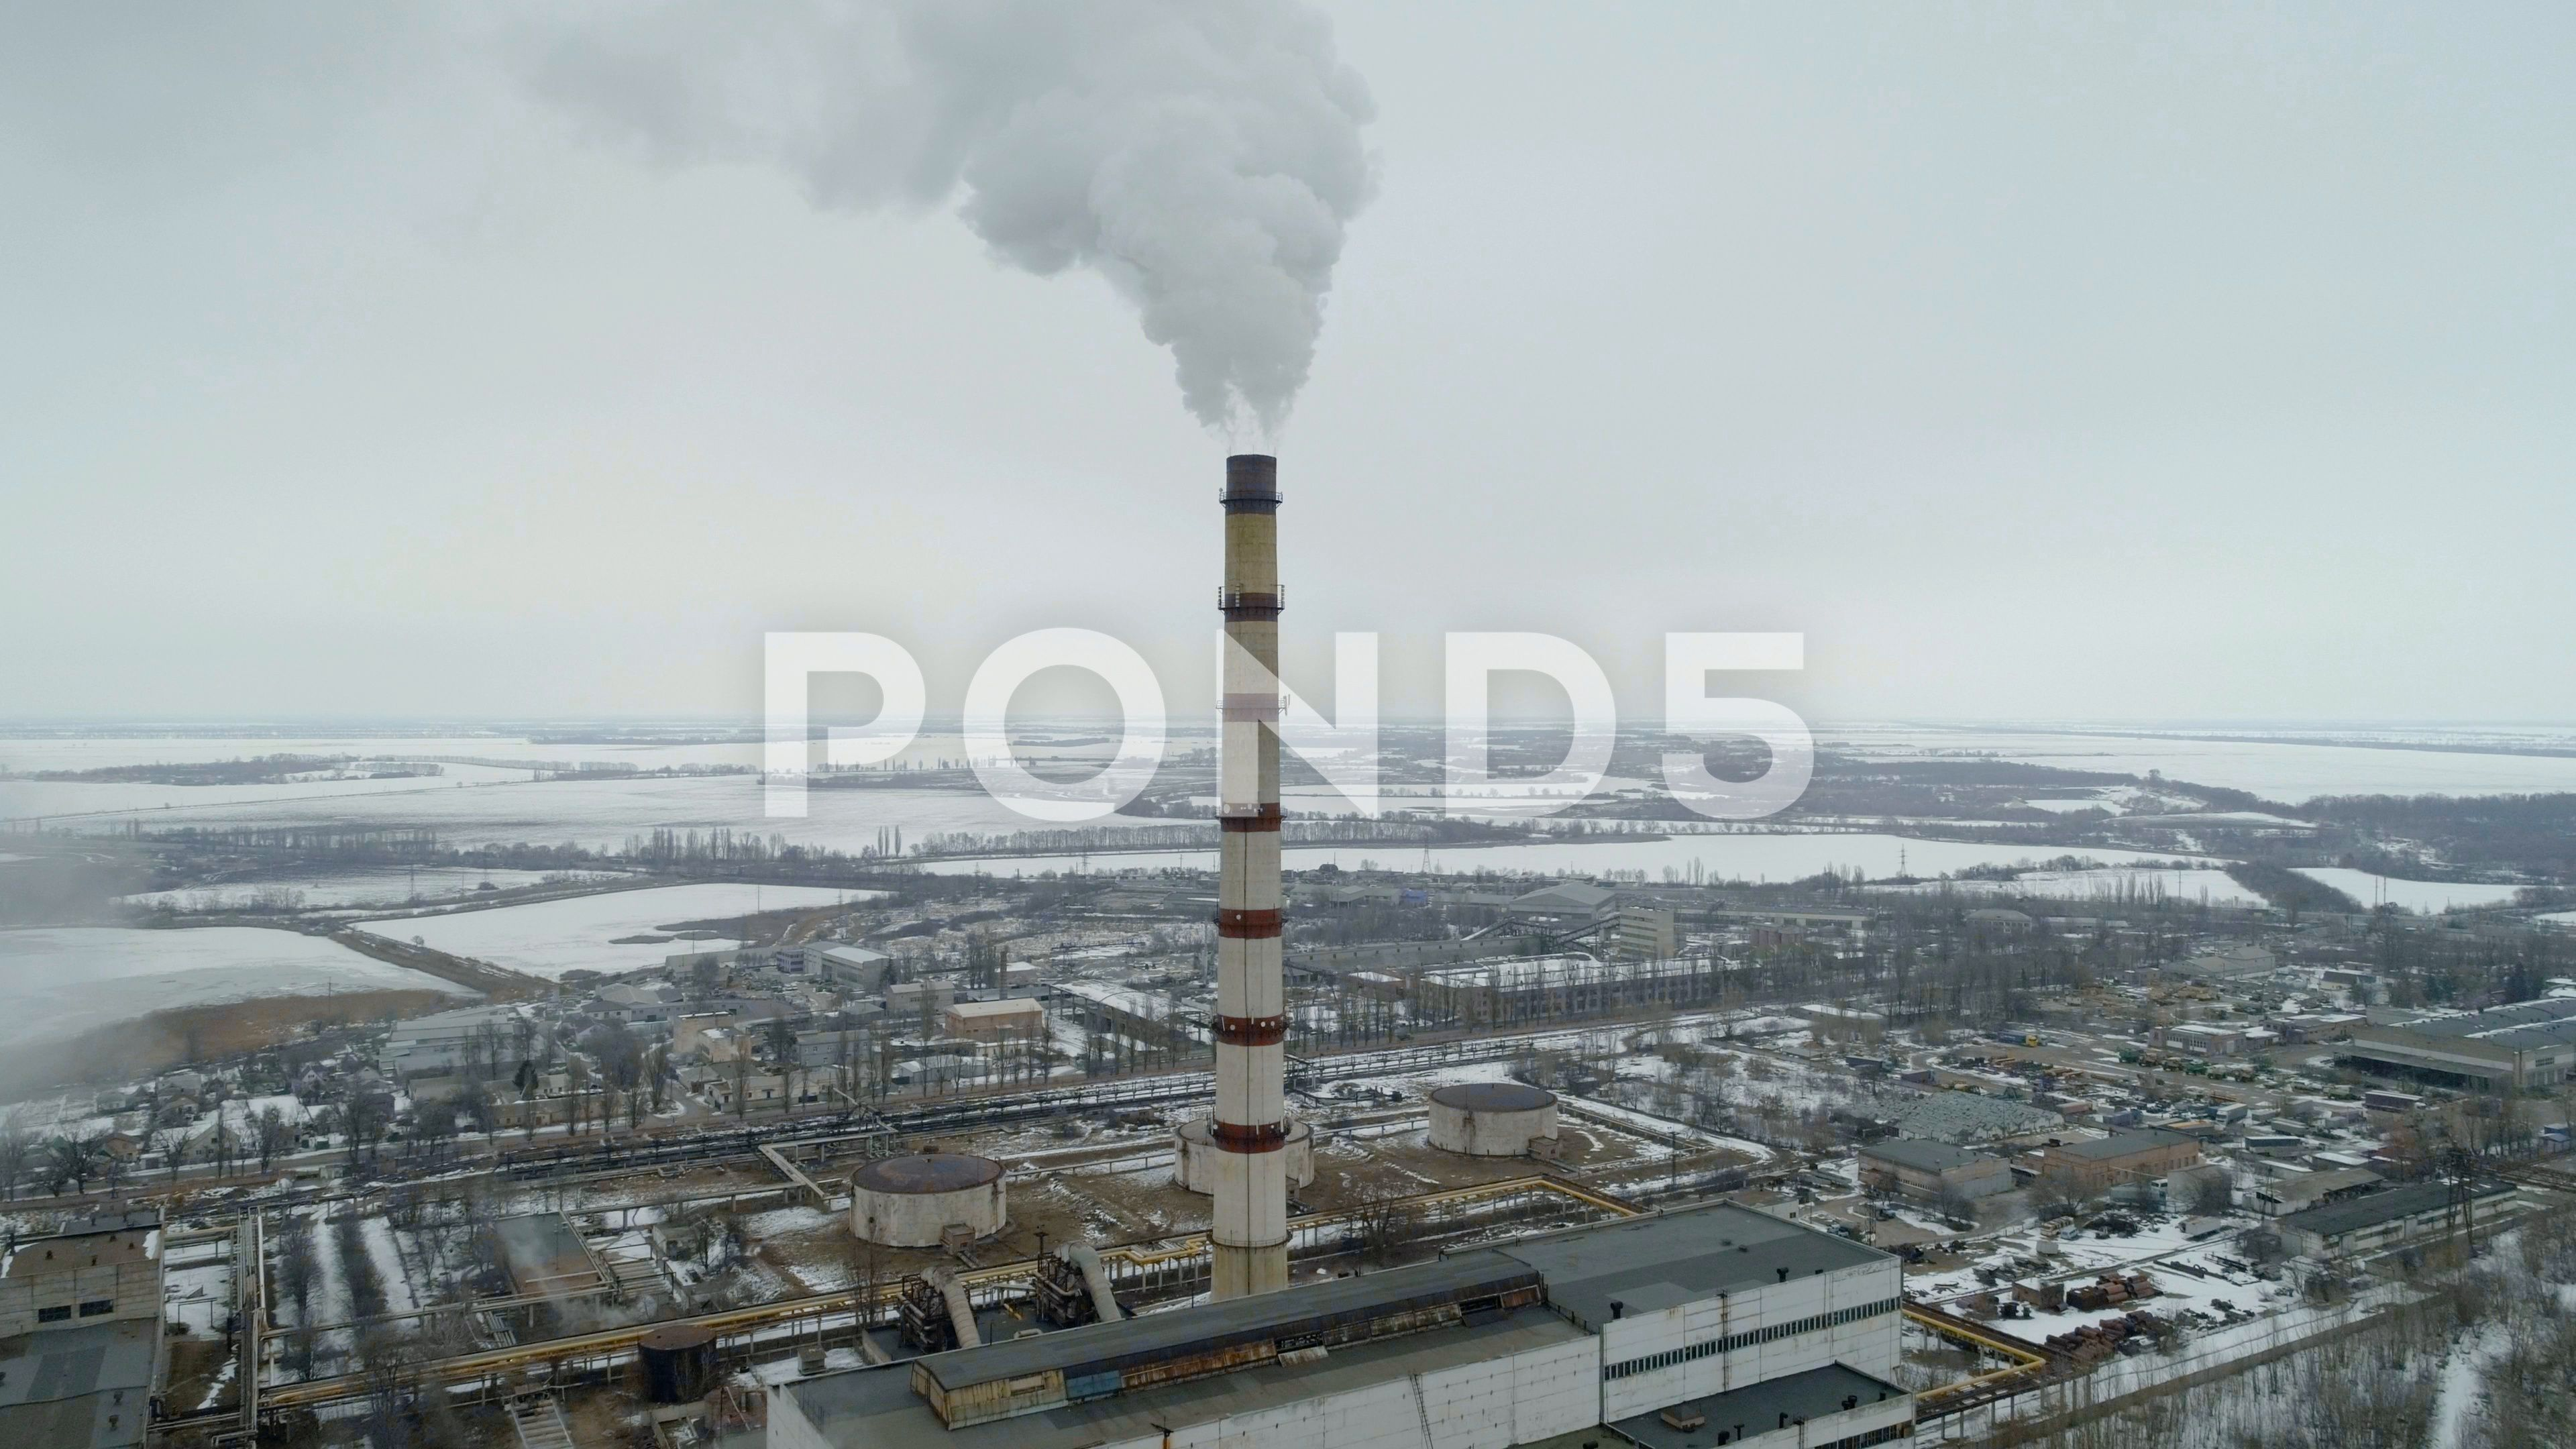 Thermal Power Plant Produces Massive Smoke In The Atmosphere Stock